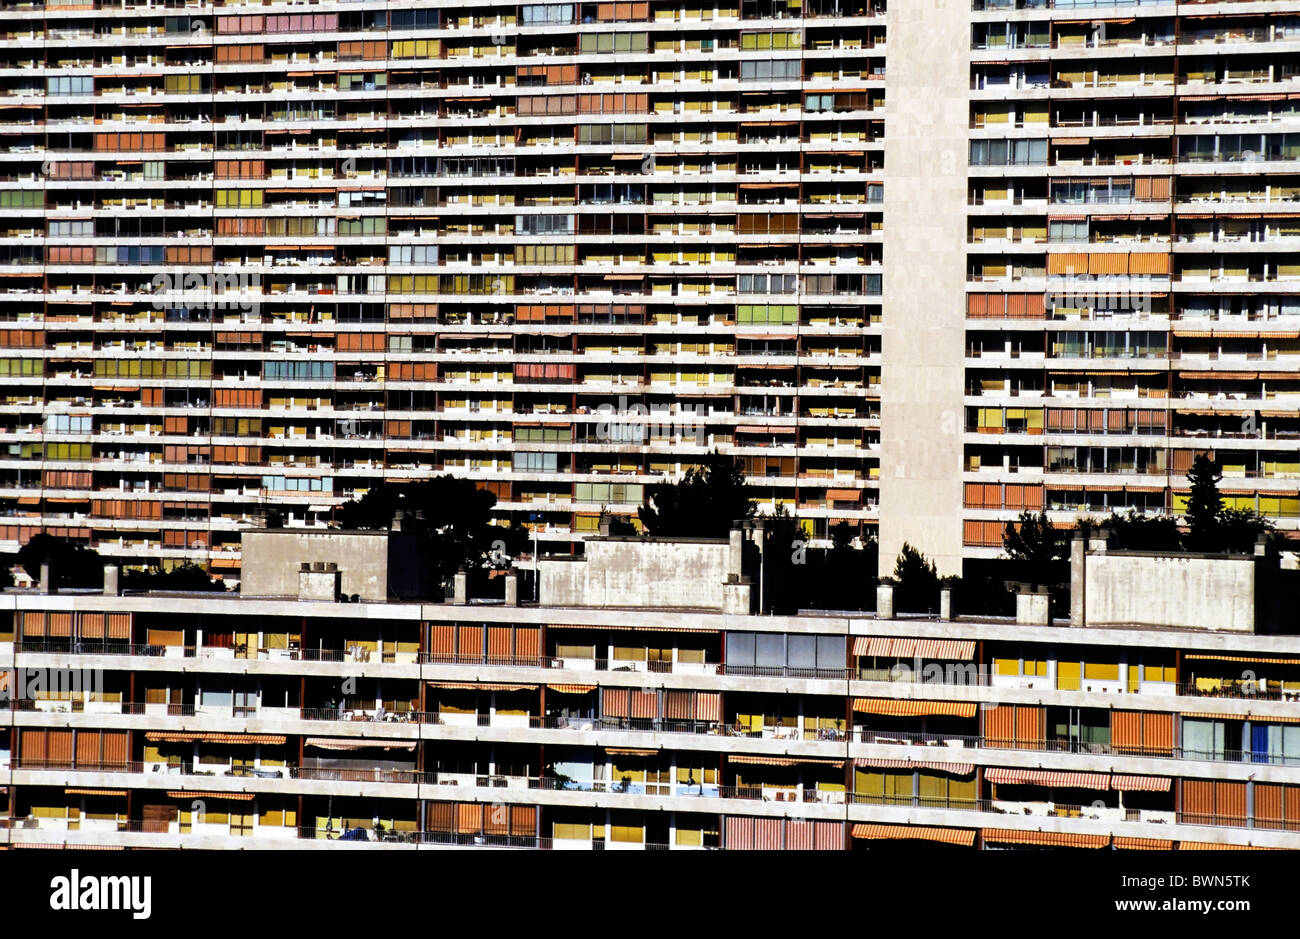 French apartment buildings with balconies with colourful sun shades, in the city centre of Marseille, France - Stock Image